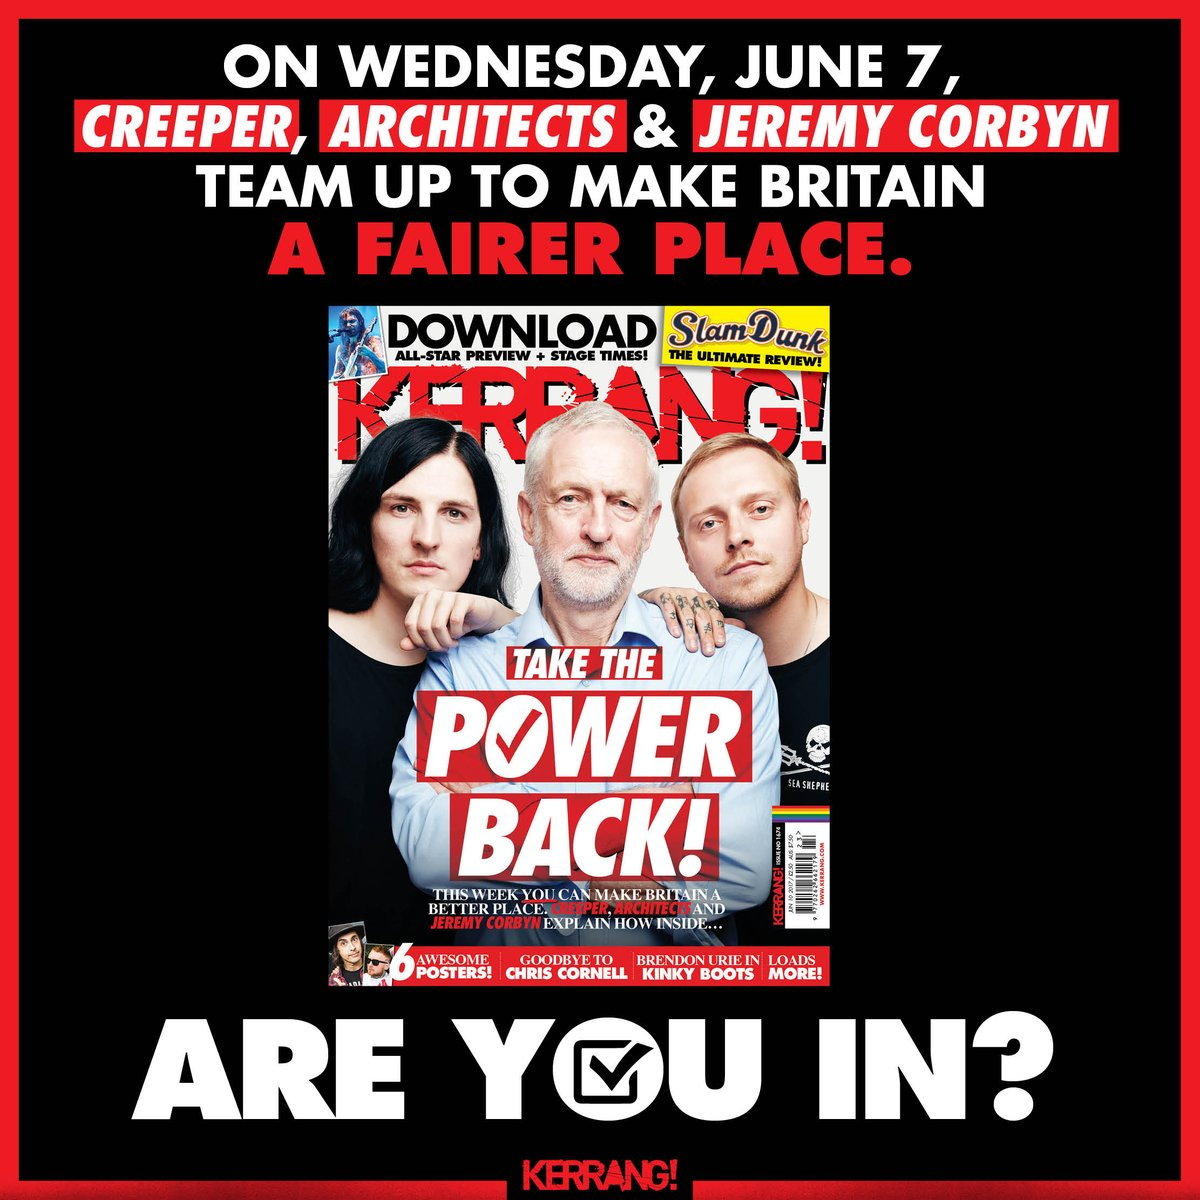 Next week's Kerrang! is one of the most important issues we've ever made. Don't miss it. On sale, Wednesday, June 7 https://t.co/SXx2yY5py7